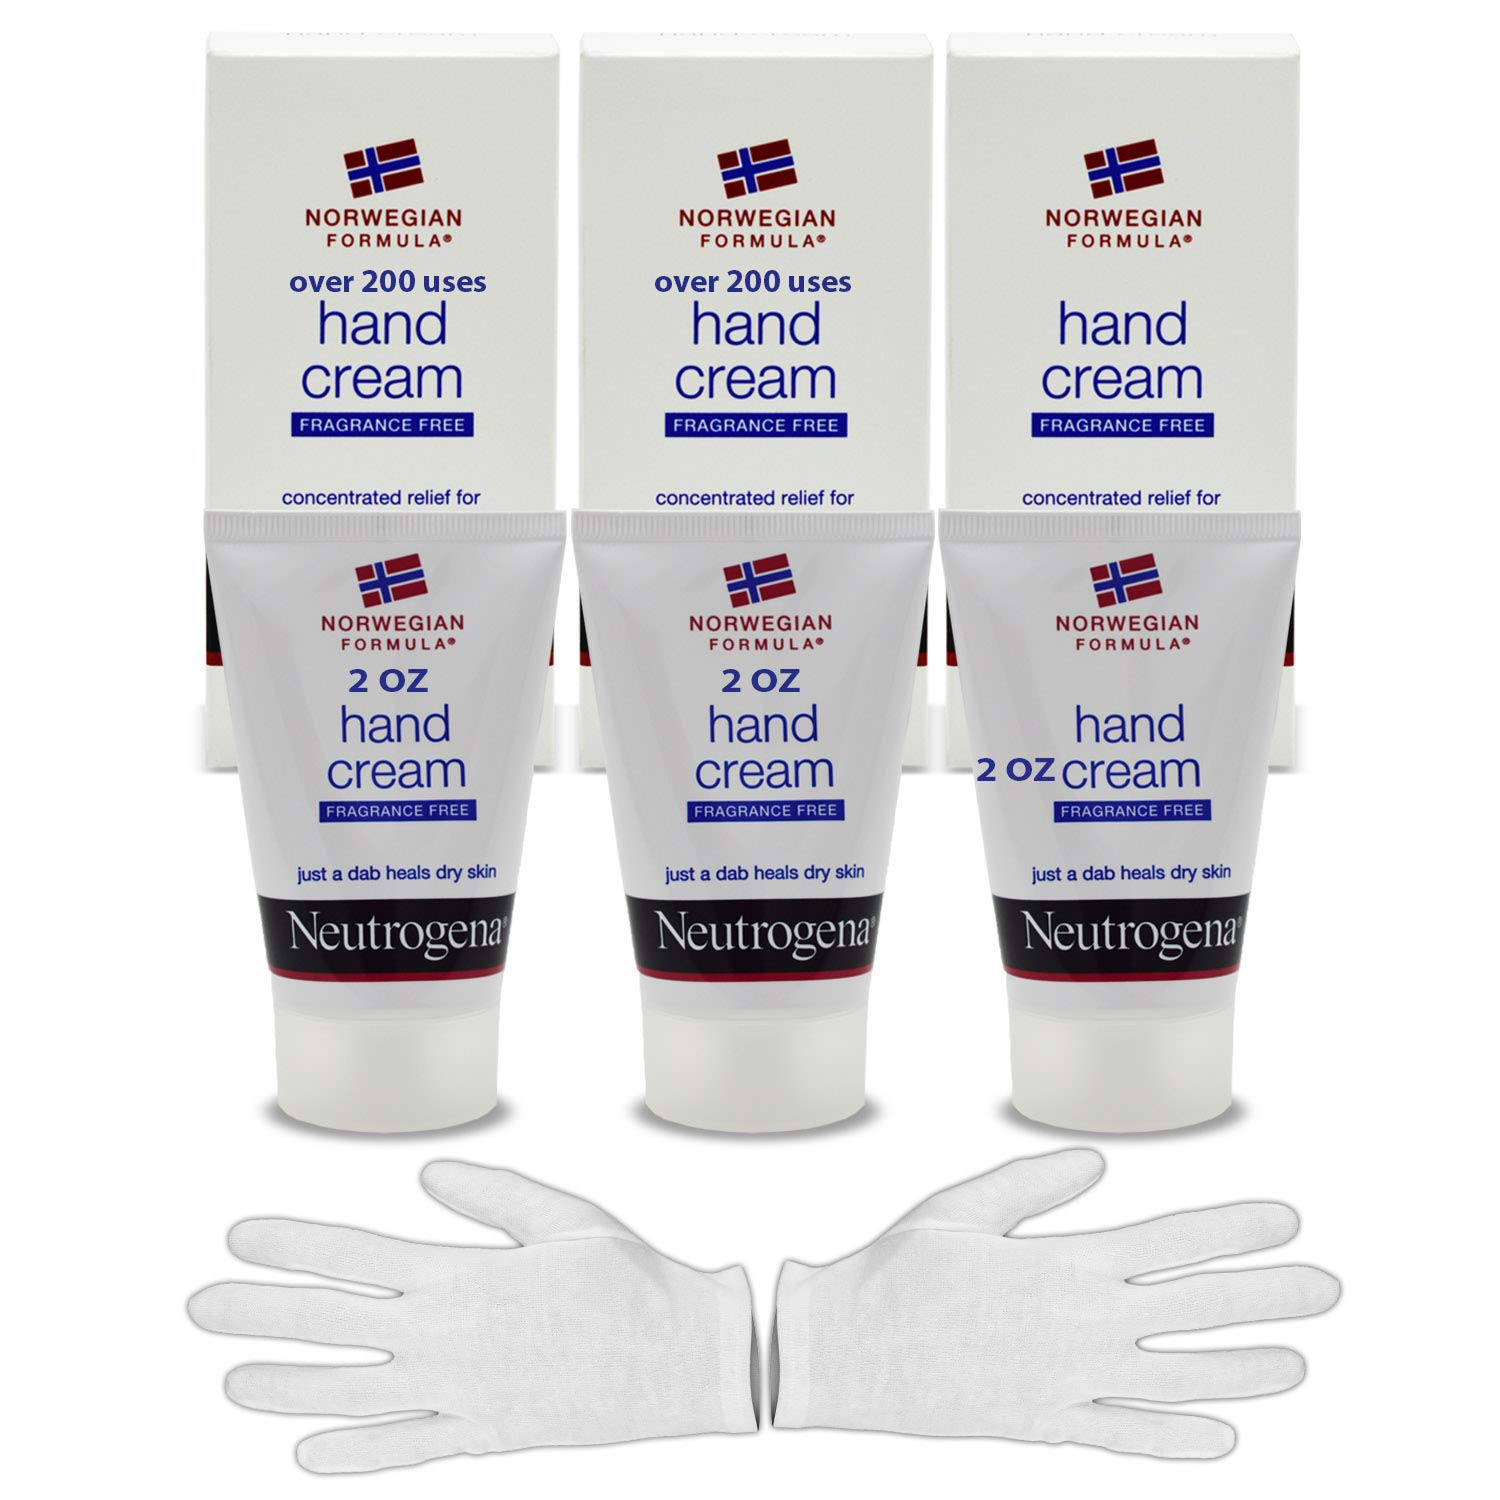 Neutrogena Norwegian Formula Hand Cream Kit: 2 Oz (200 Applications) Hand Lotion For Dry Cracked Hands (3 PK) & HeroFiber Large Overnight Moisturizing Thin White Cotton Sleeping Gloves.